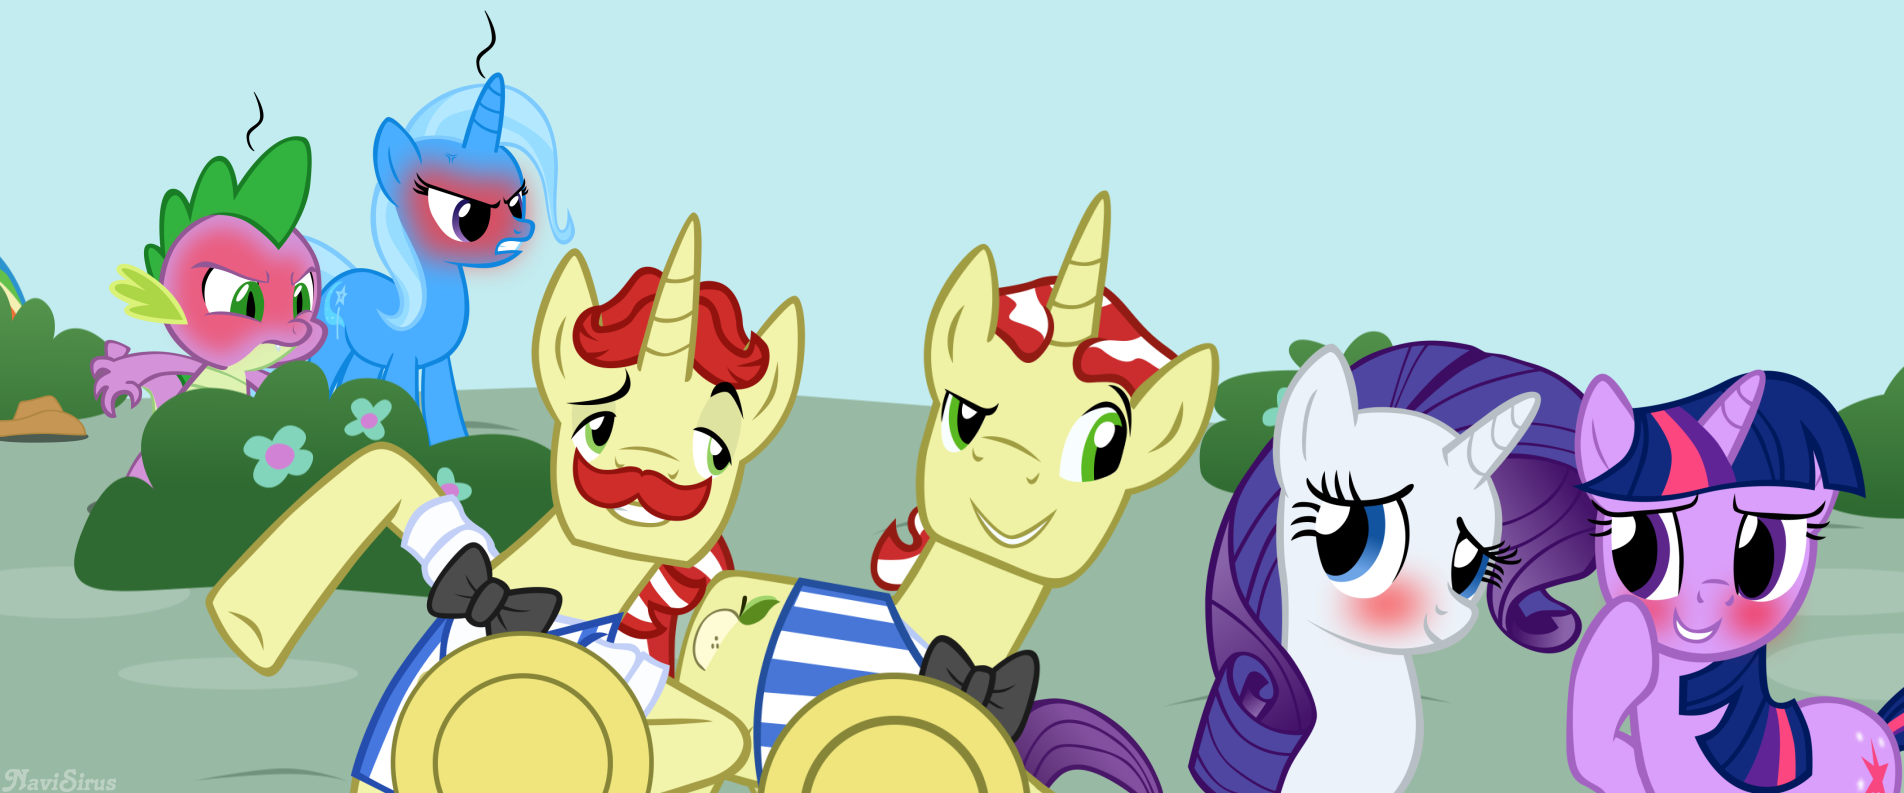 Image - 245540] | My Little Pony: Friendship is Magic | Know